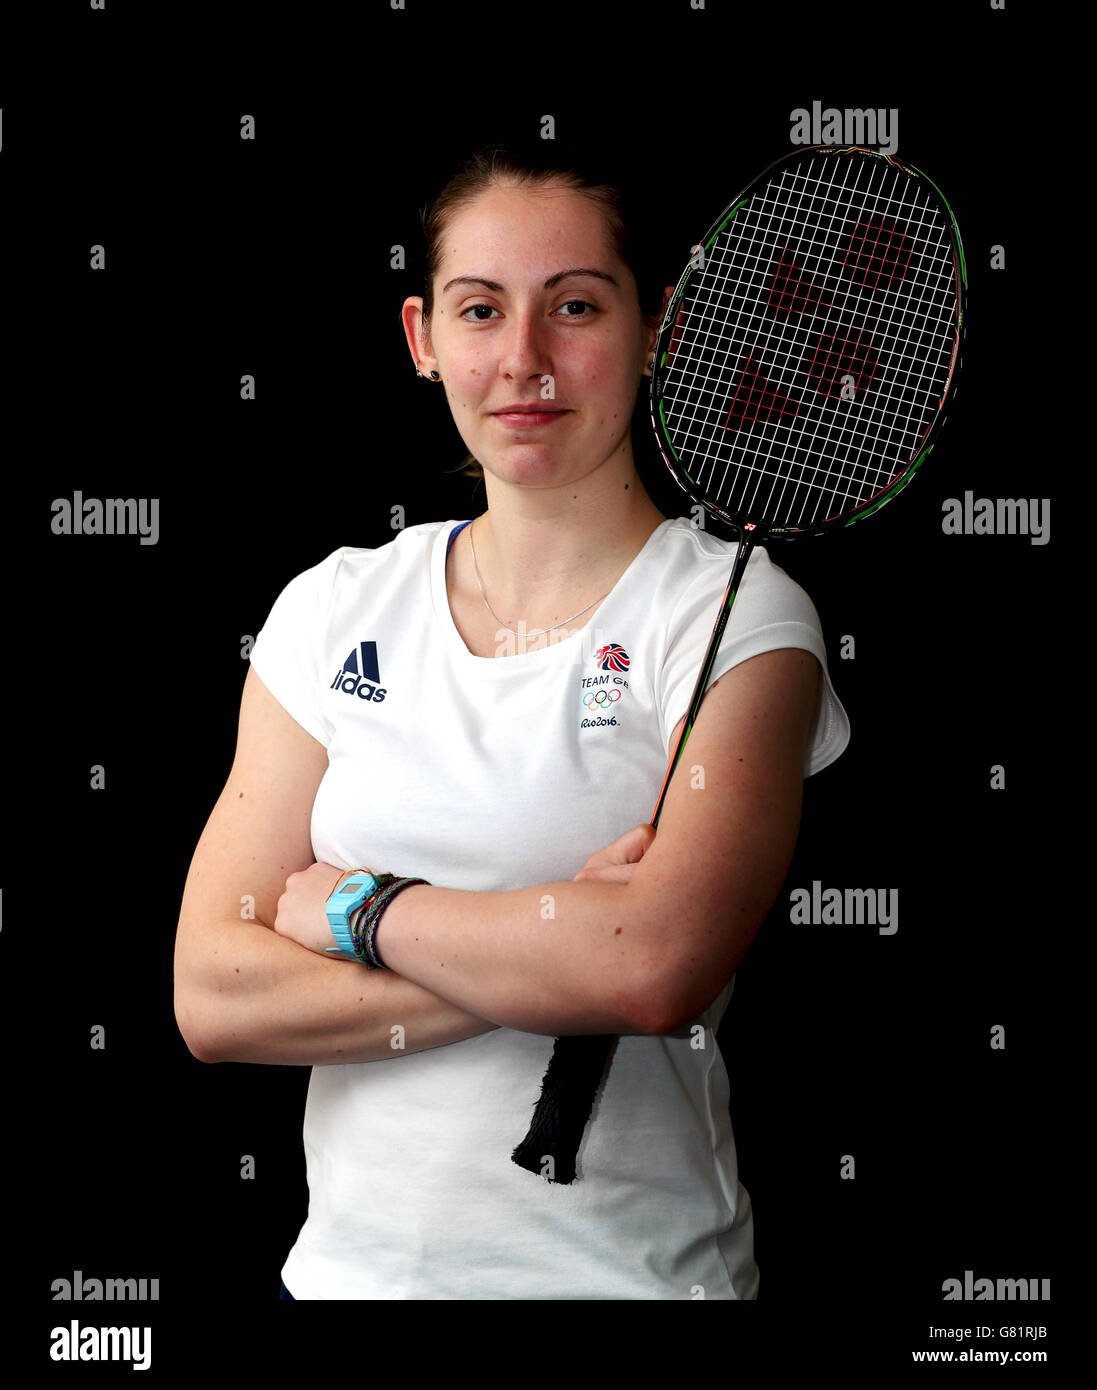 Team GB s Kirsty Gilmour poses for a photo after the Badminton